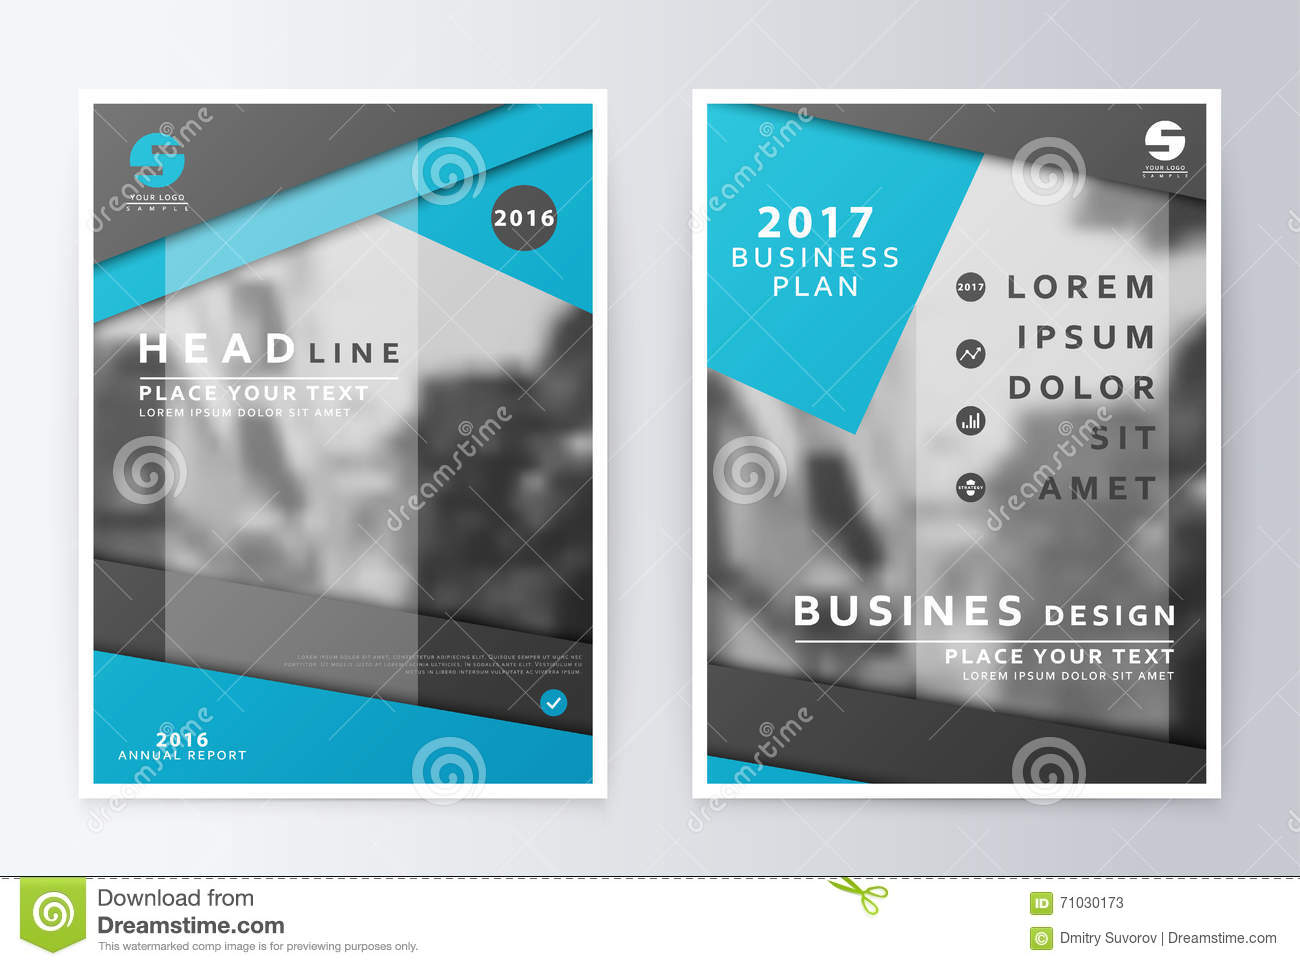 Annual report brochure business plan flyer design template stock business plan flyer design template cheaphphosting Image collections